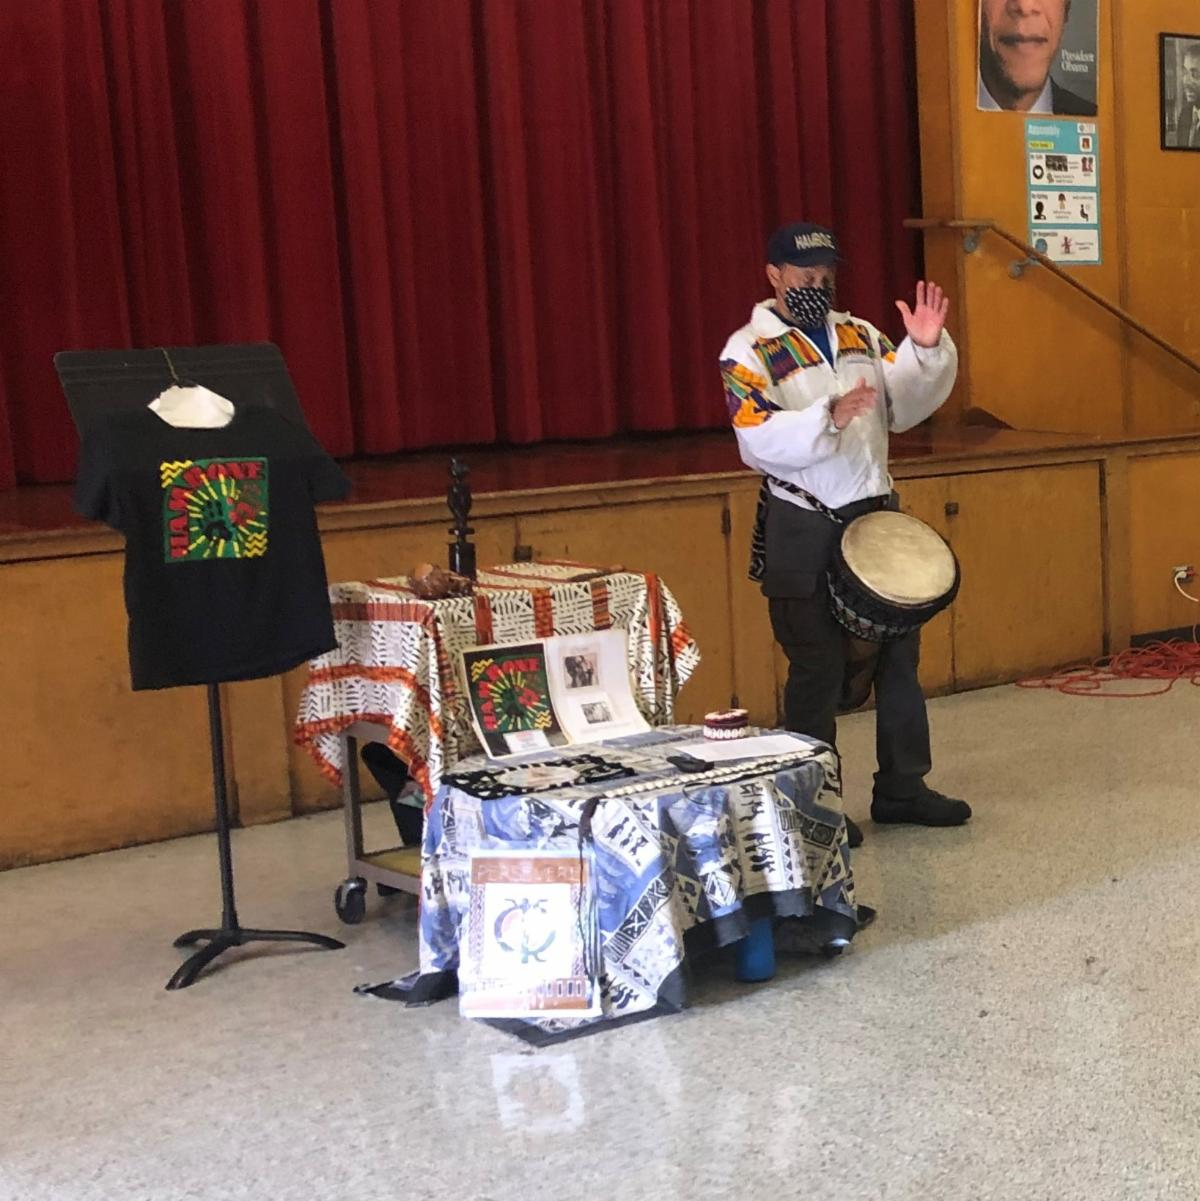 adult Black man wearing black pants and a white shirt with colorful patterned patches plays a drum next to an alter with displays of African symbols and photos and objects